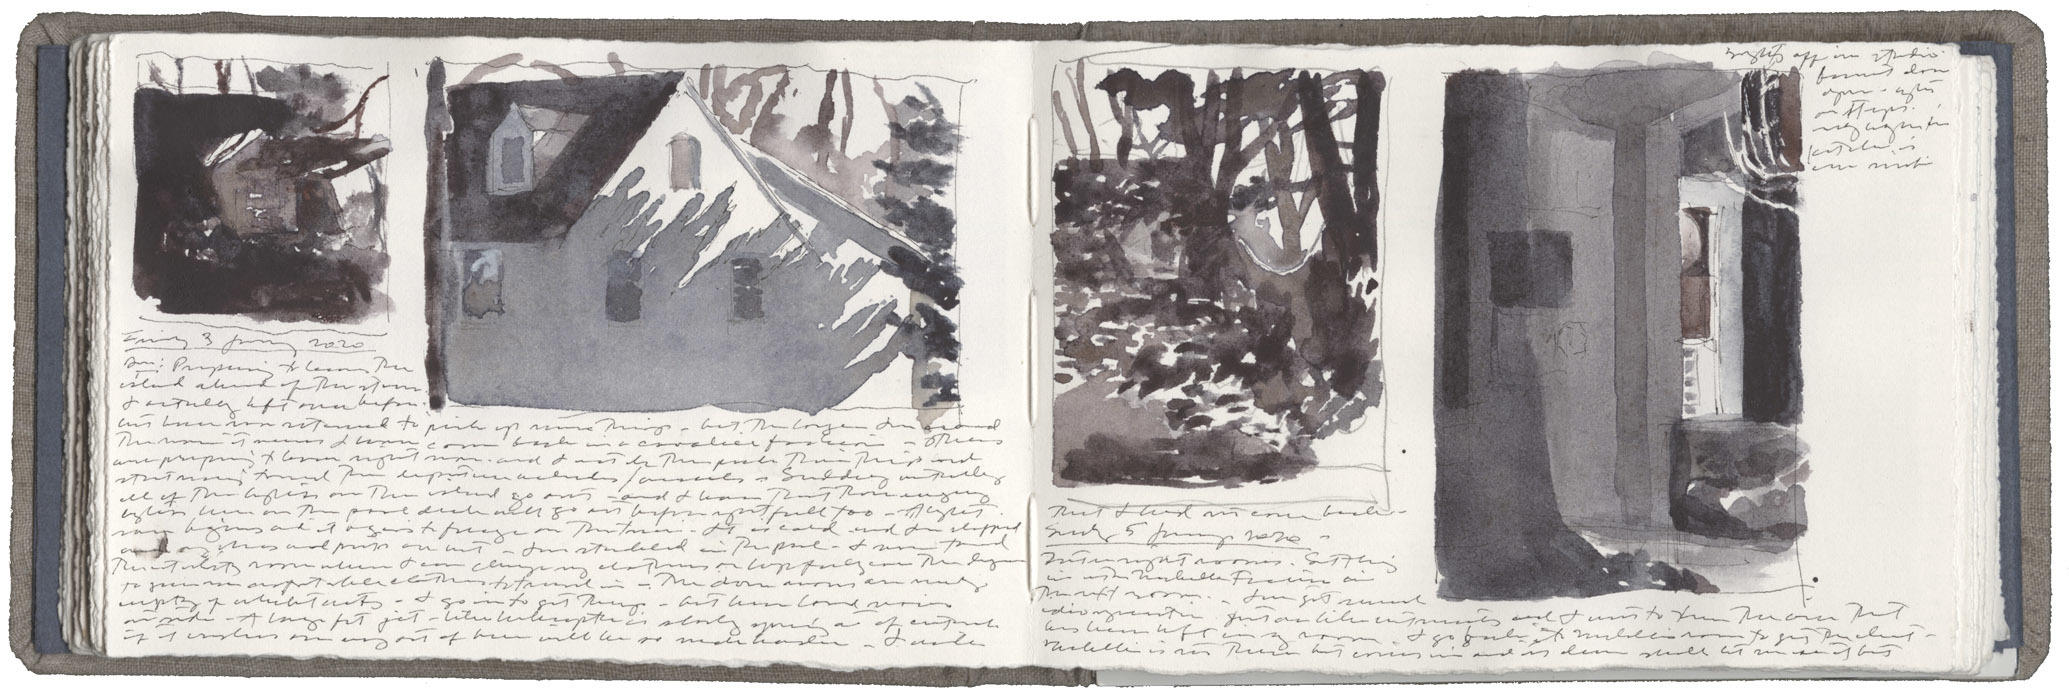 Four Studies of Winter Light image